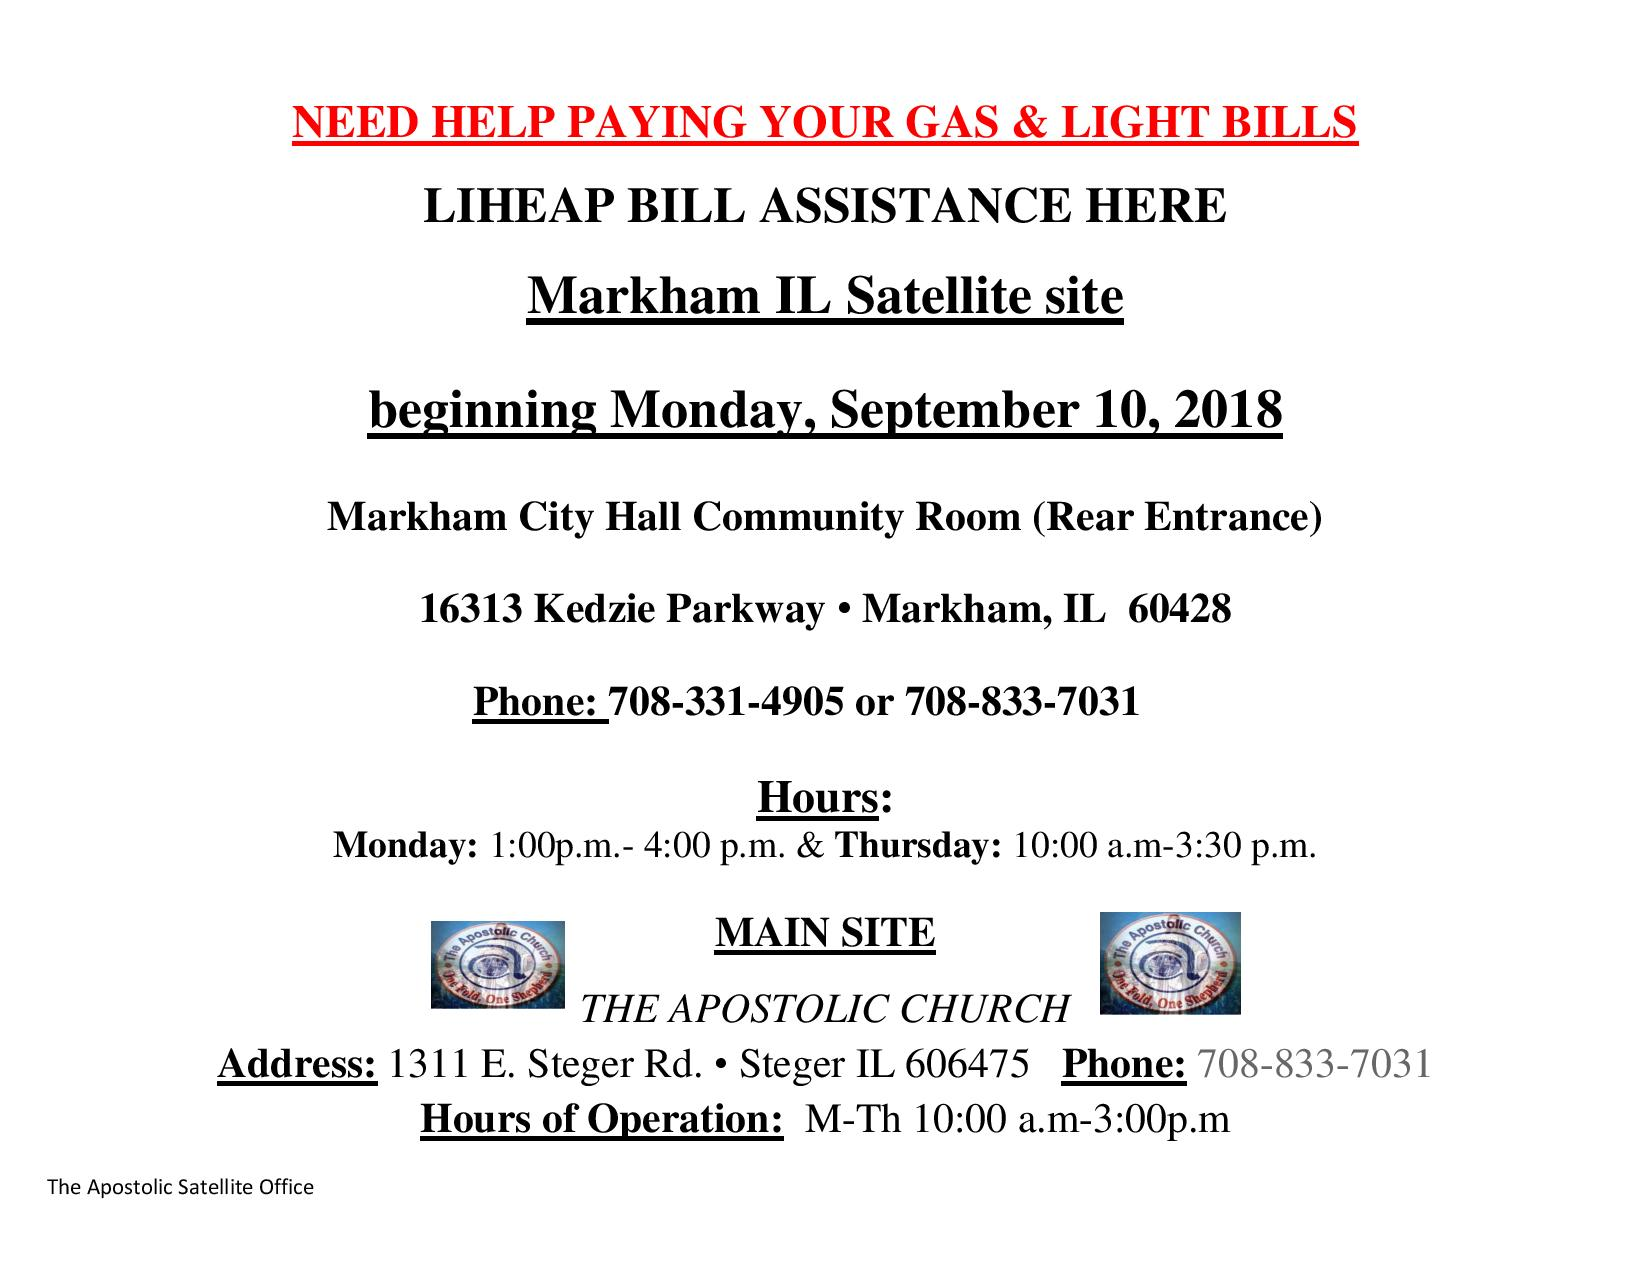 LIHEAP BILL PAY ASSISTANCE FLYER